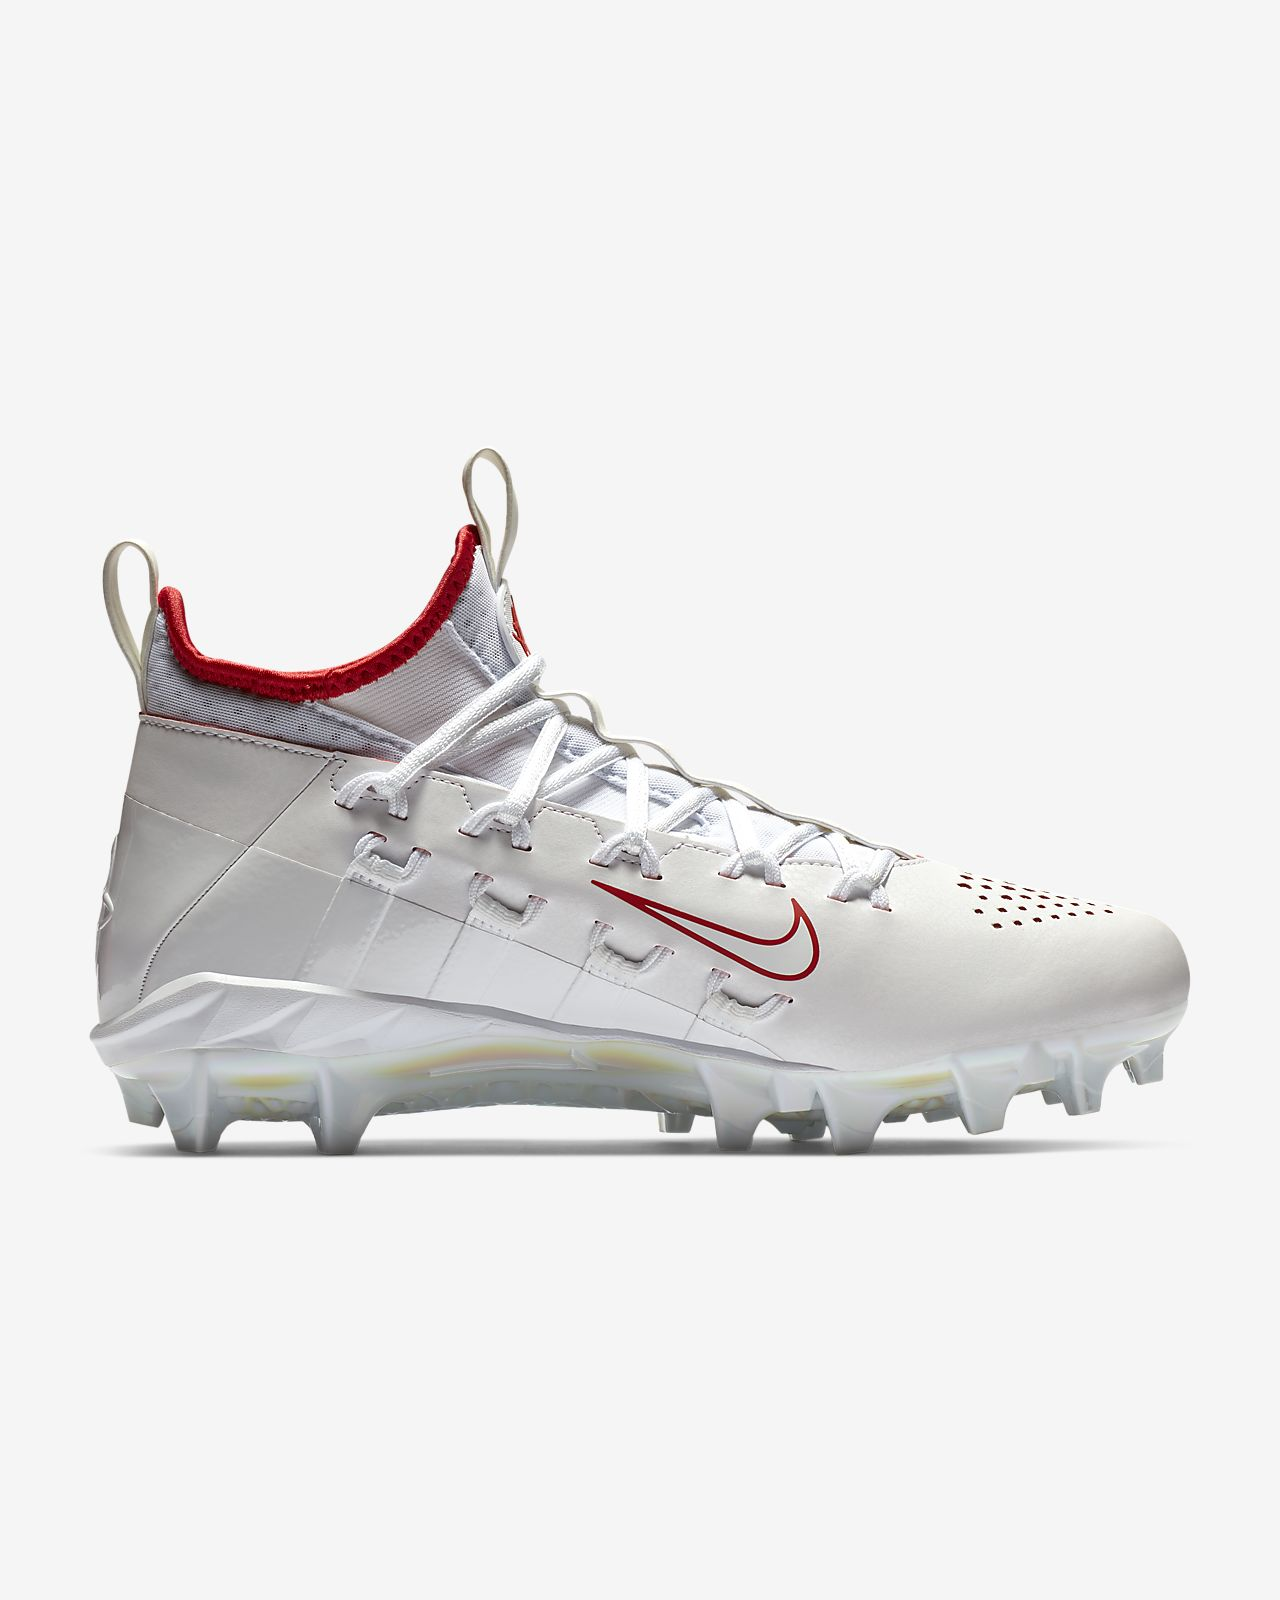 new styles 92207 010e6 ... Nike Alpha Huarache 6 Elite LAX Premium Lacrosse Cleat